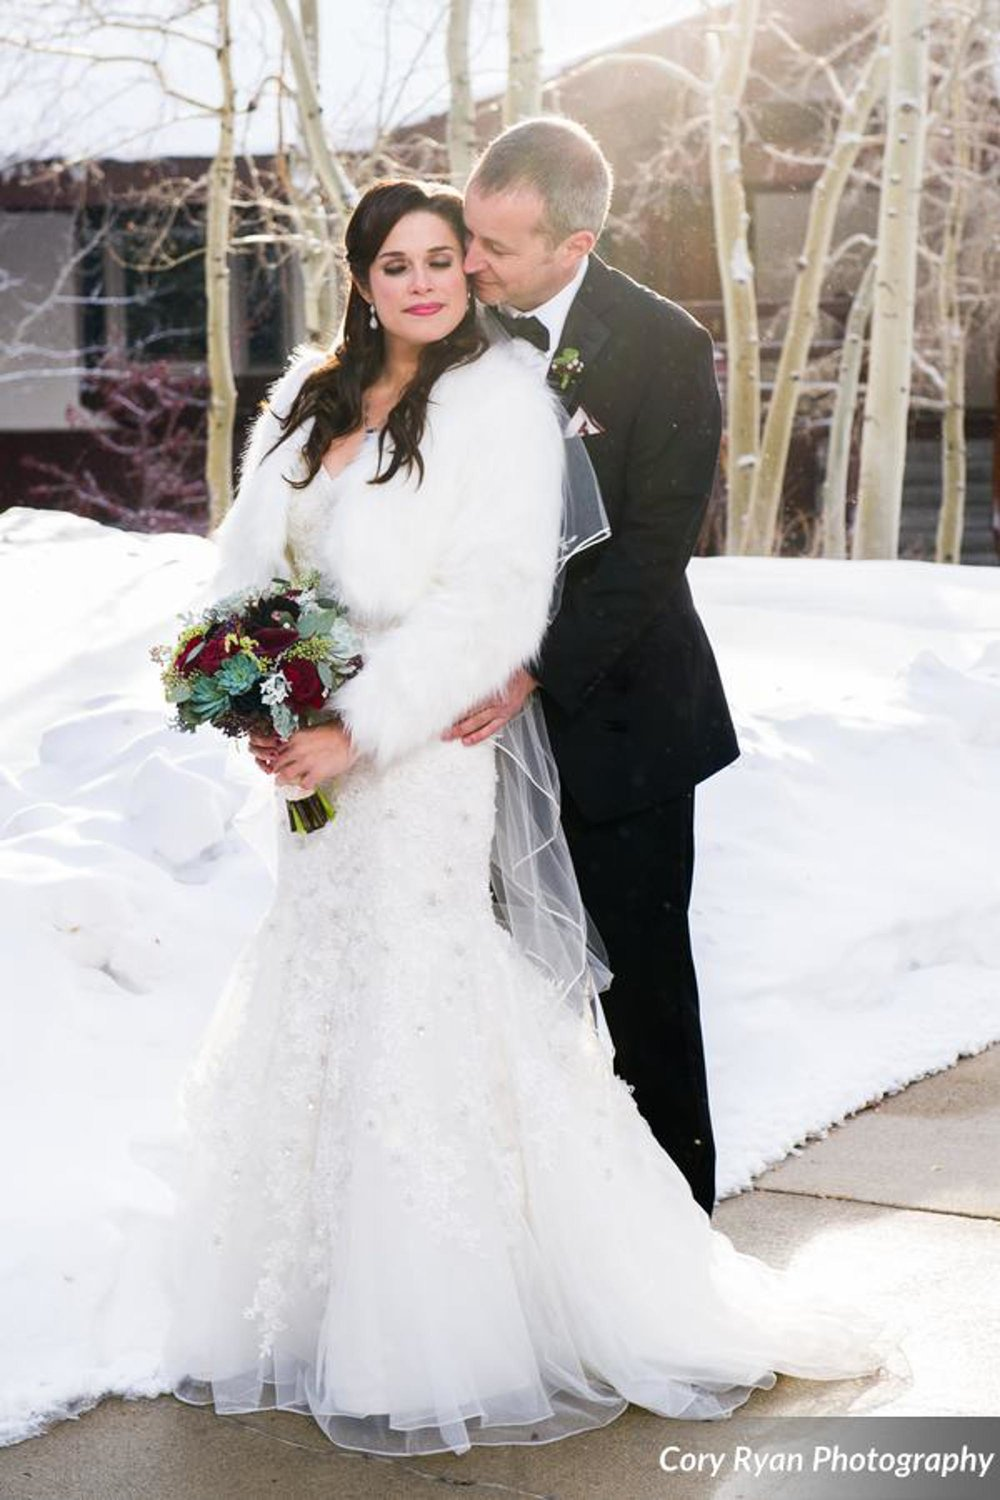 romantic winter wedding stein eriksen lodge-59.jpg